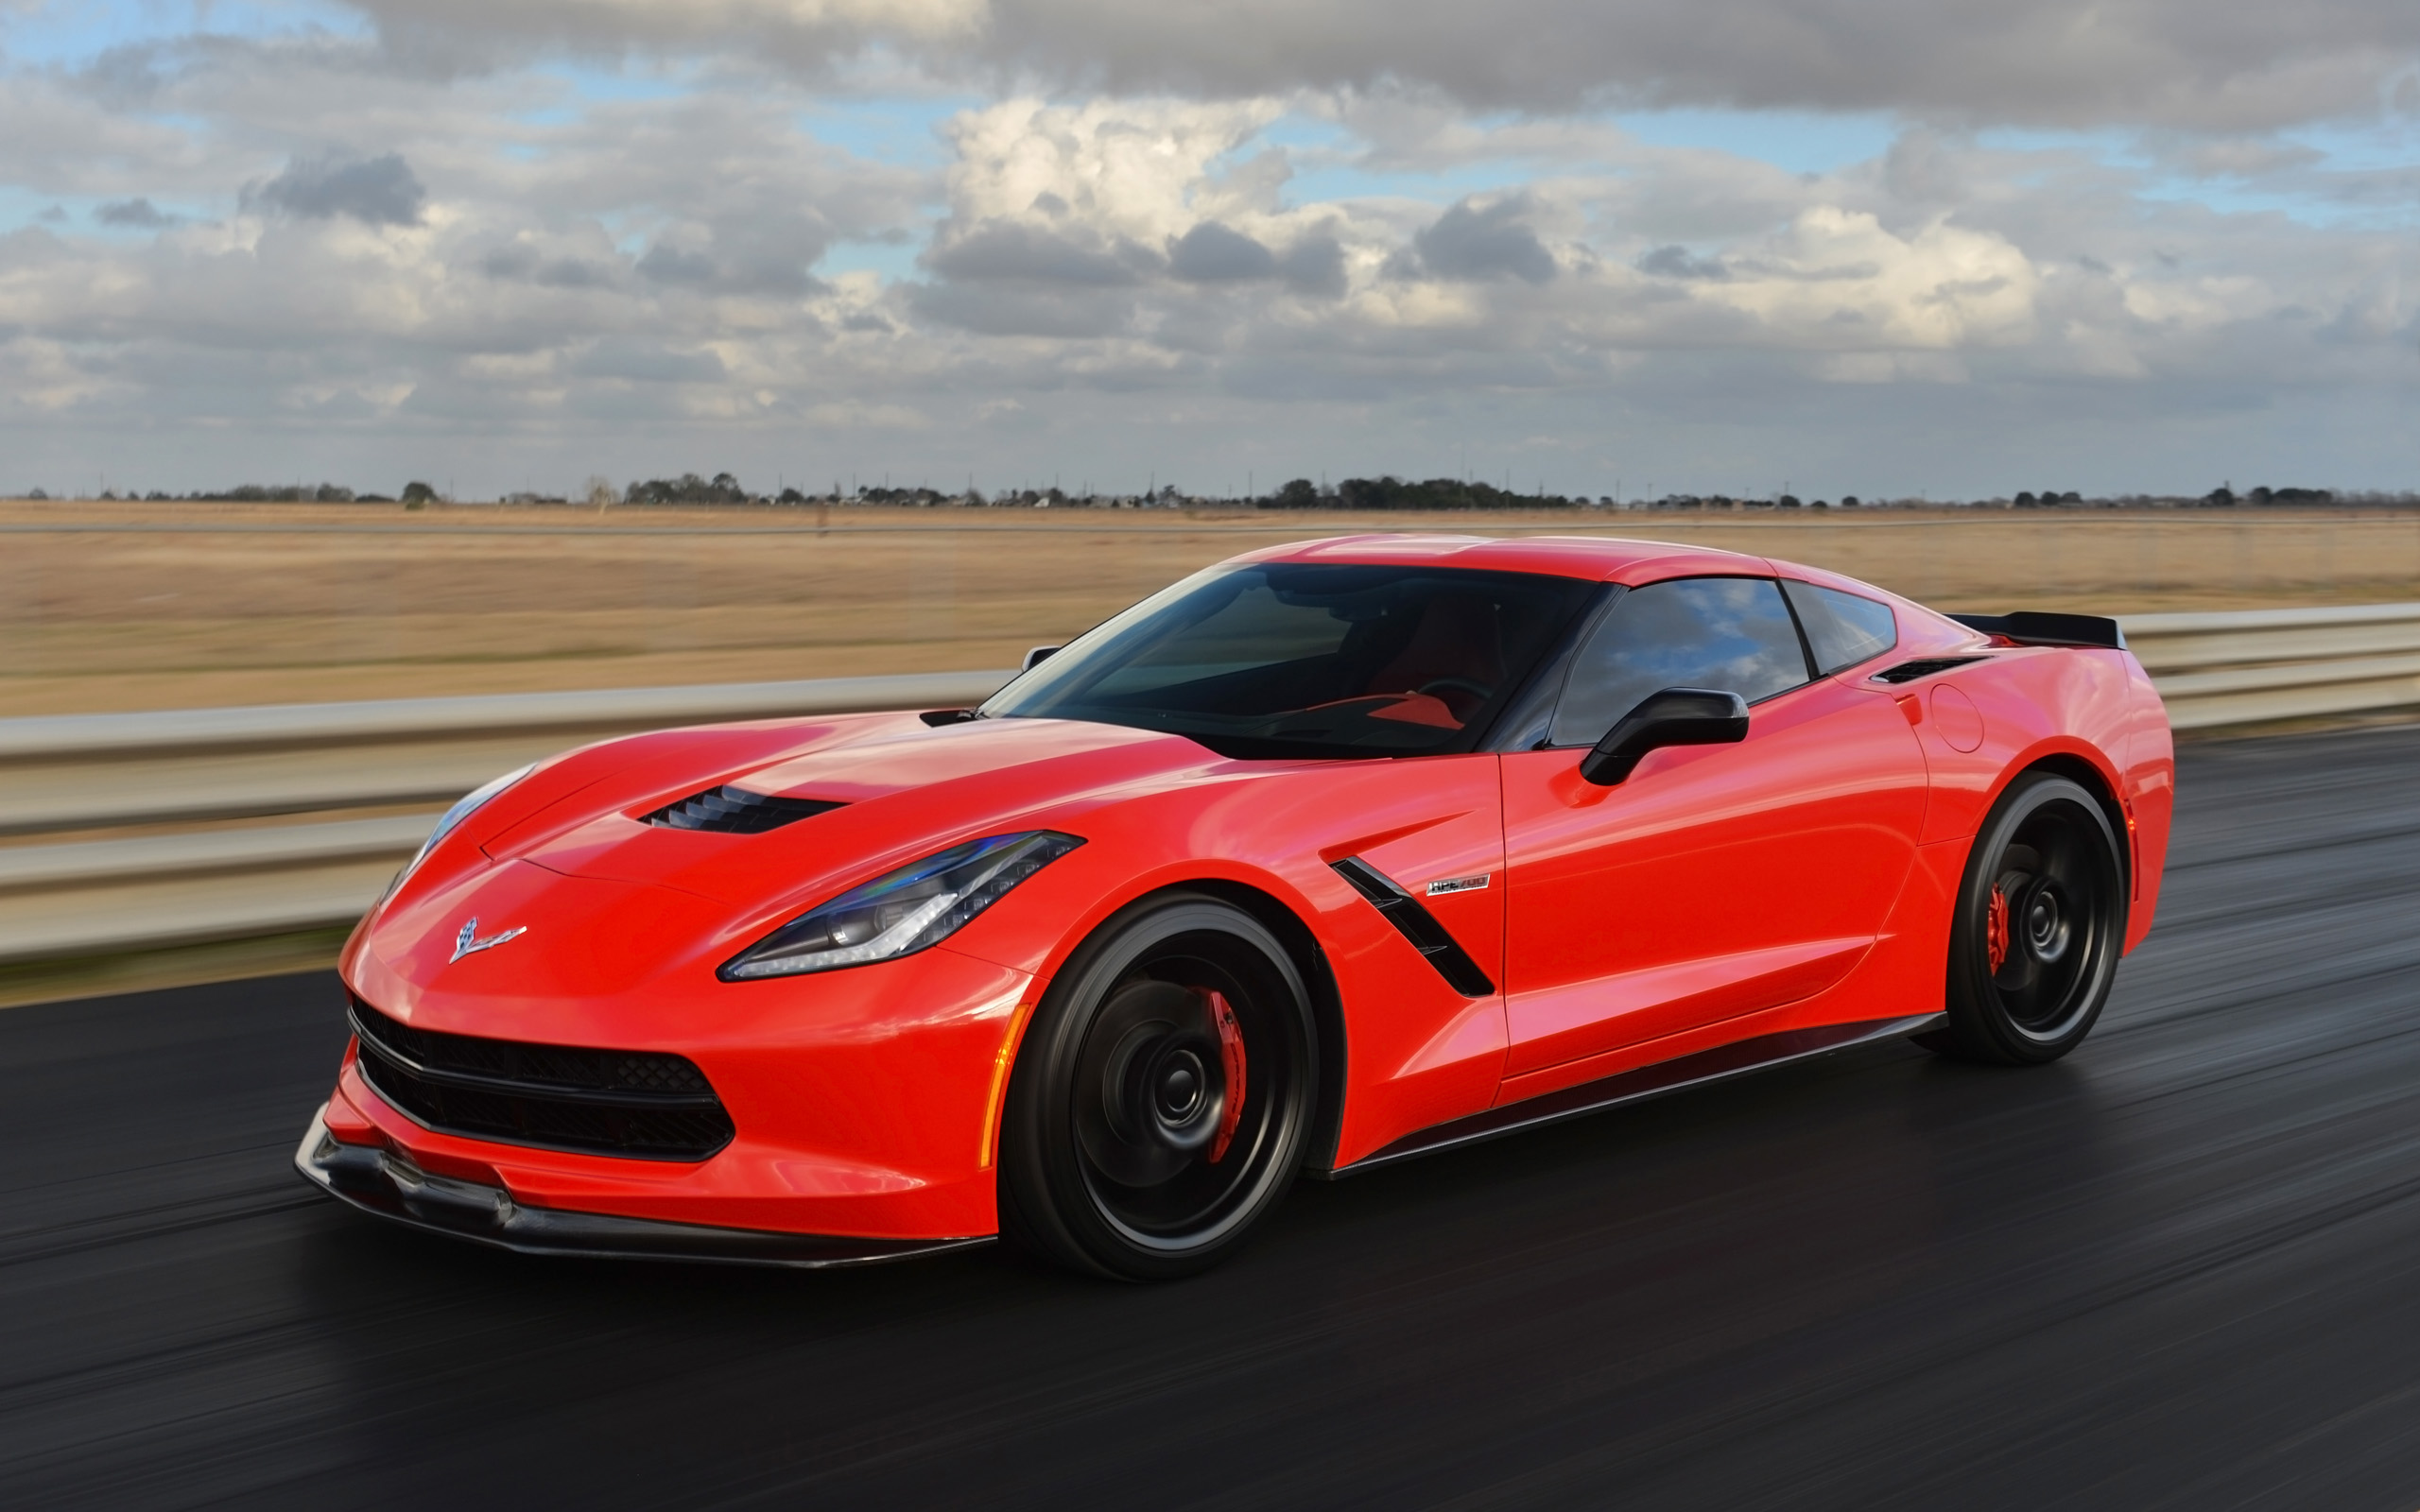 2014 Corvette Stingray Photos picture size 2560x1600 posted by 2560x1600